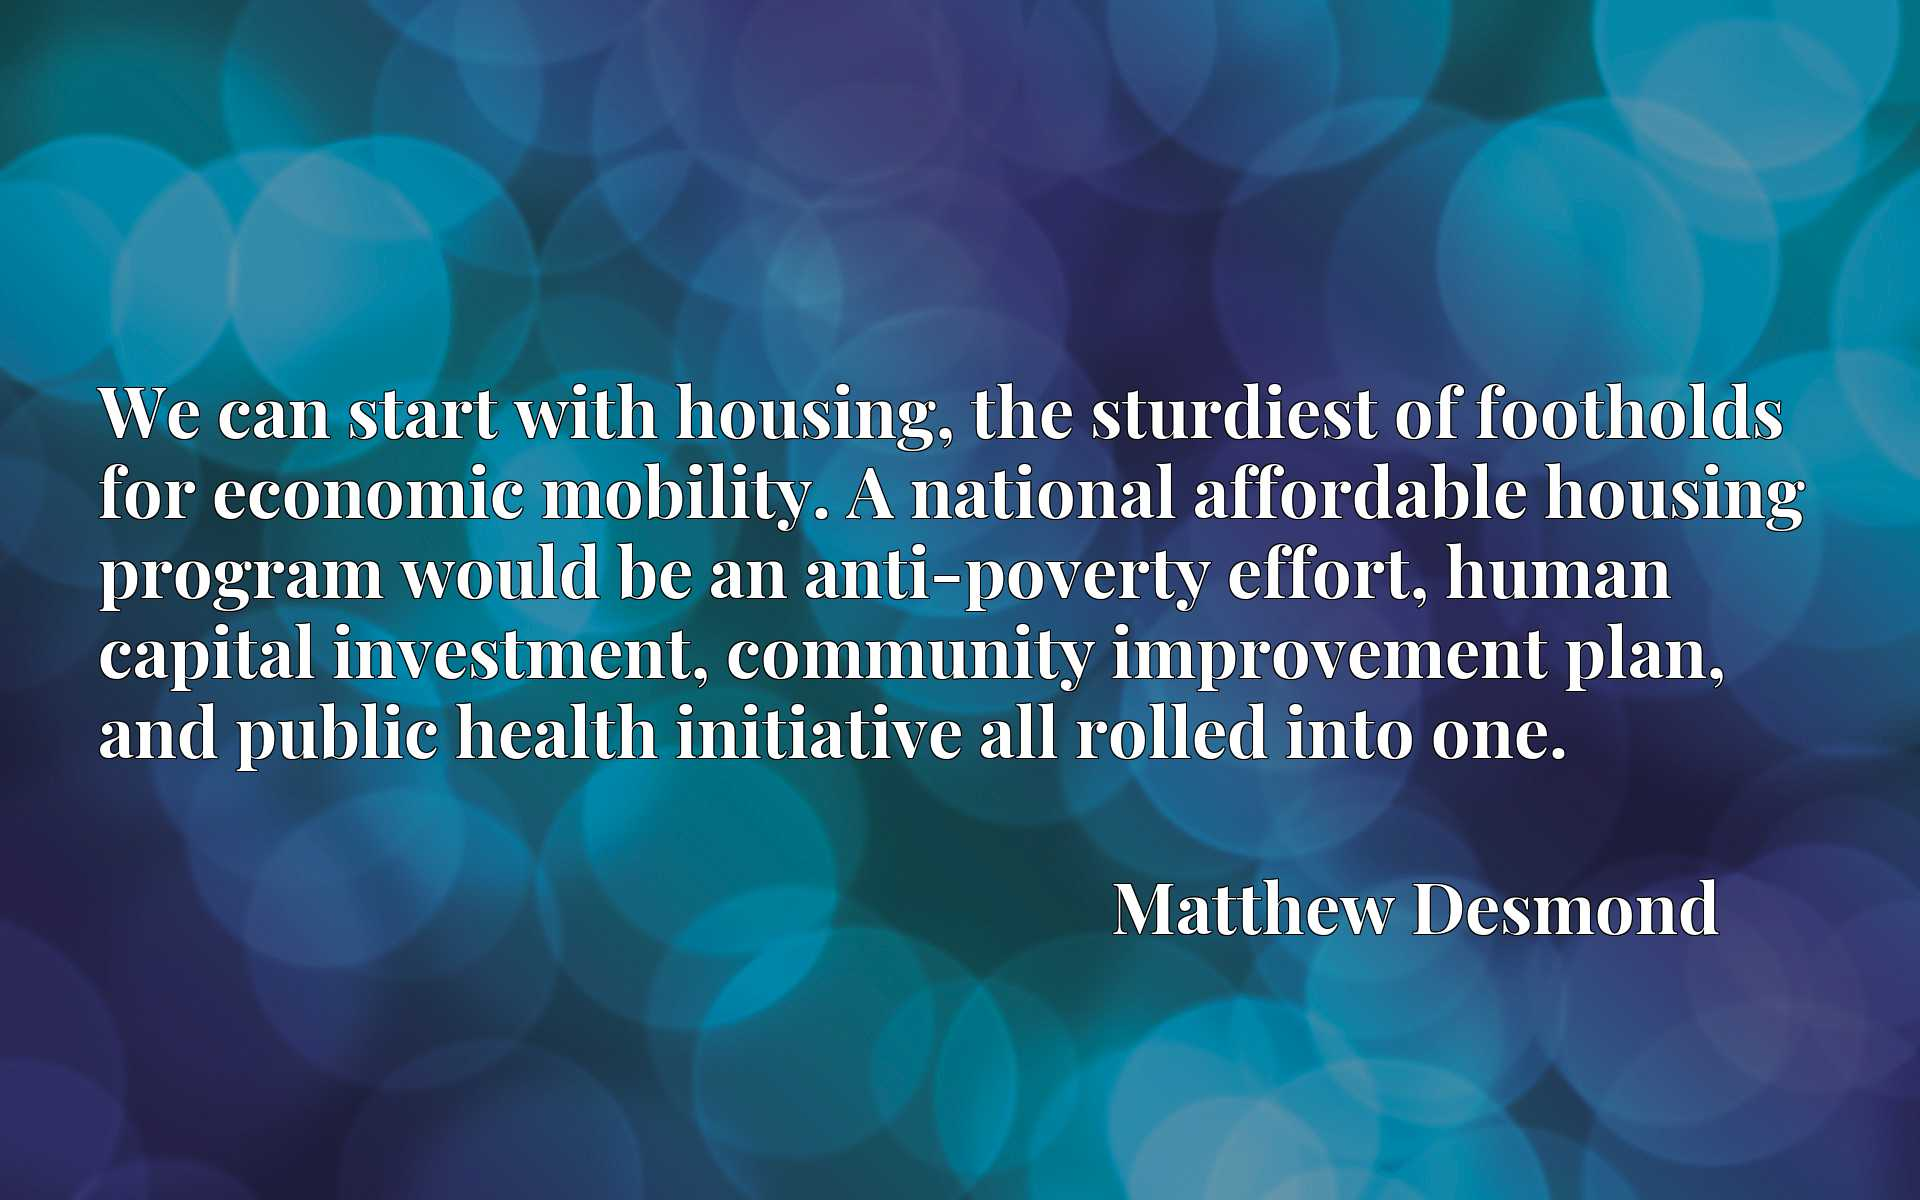 We can start with housing, the sturdiest of footholds for economic mobility. A national affordable housing program would be an anti-poverty effort, human capital investment, community improvement plan, and public health initiative all rolled into one.